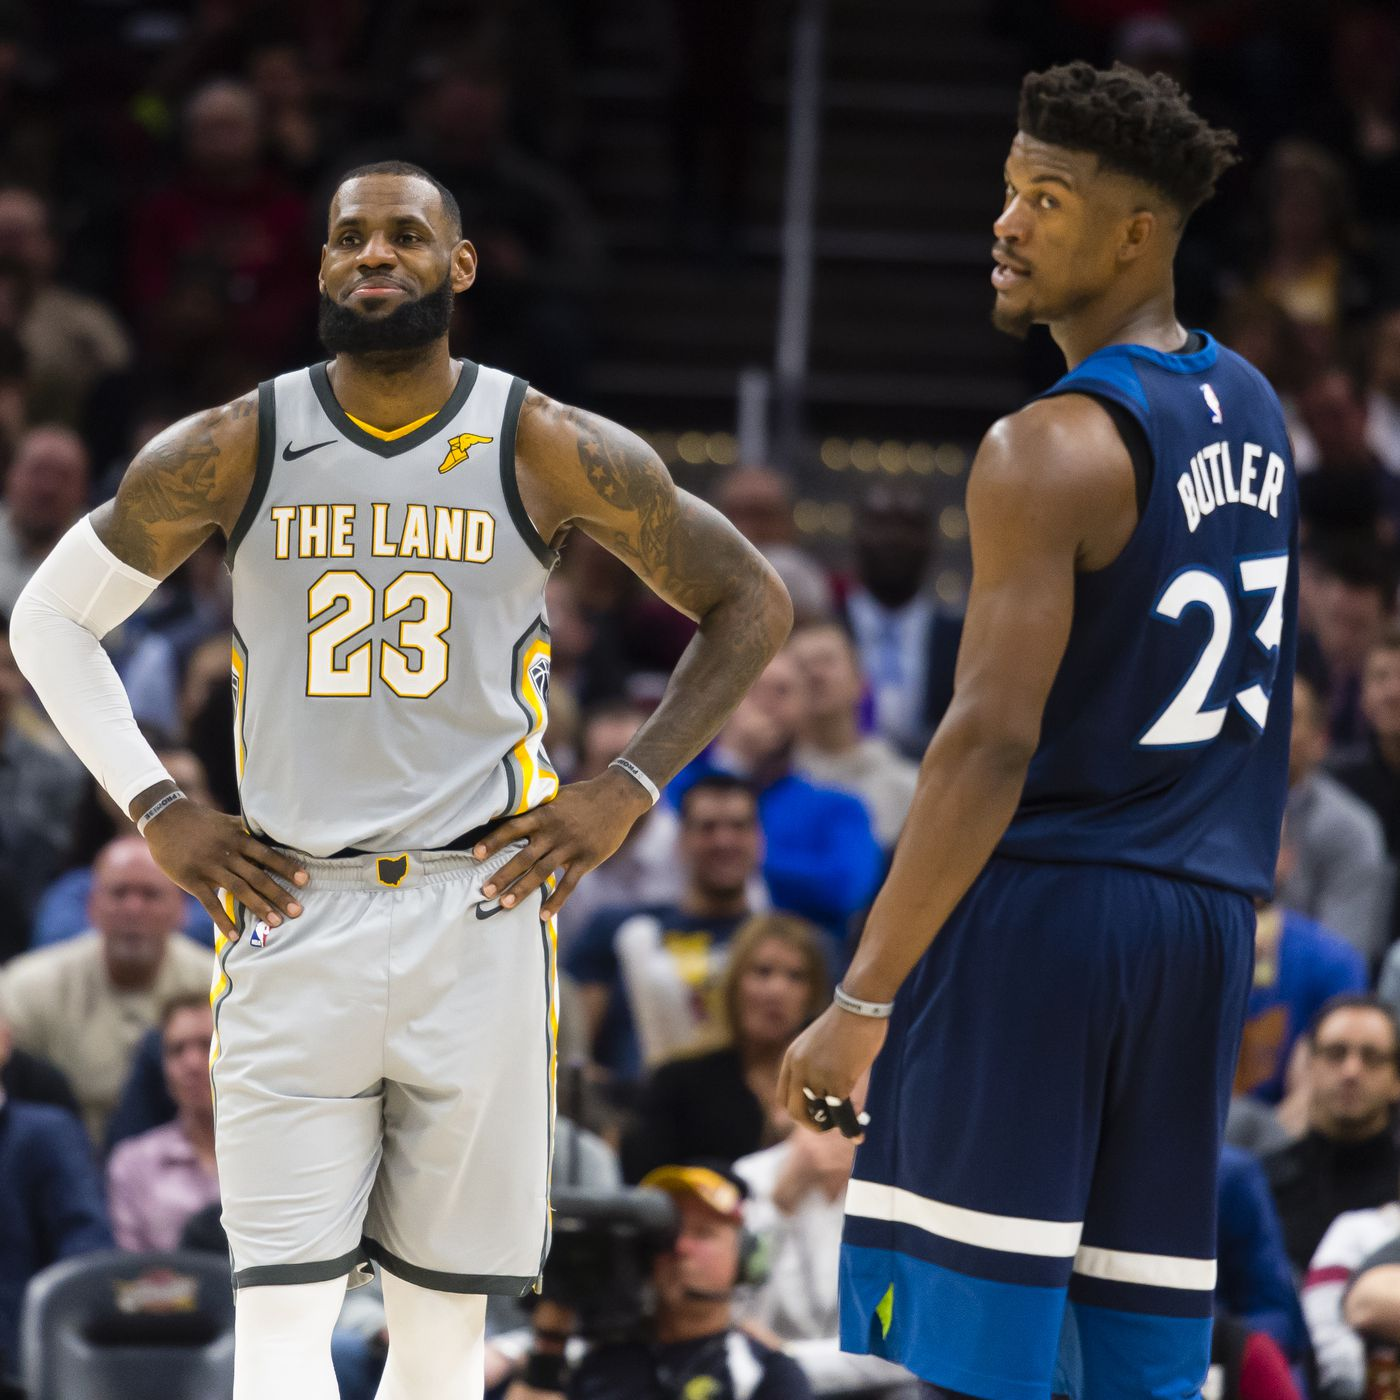 2a2f2d7046ae Jimmy Butler doesn t want to play with LeBron James. Is this a new  superstar trend